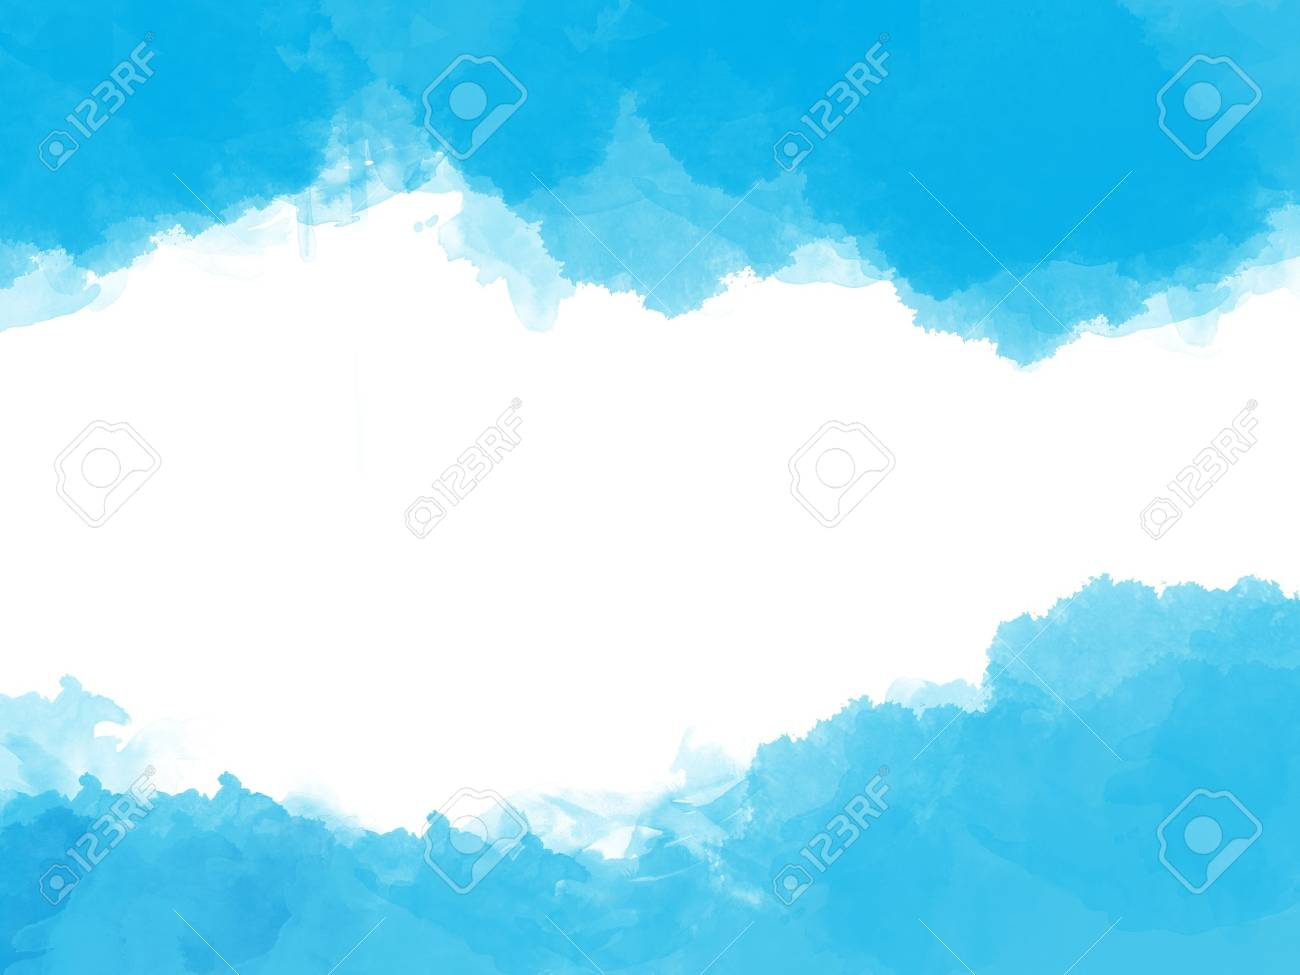 Abstract blue watercolor with space for your text Stock Photo - 17115274